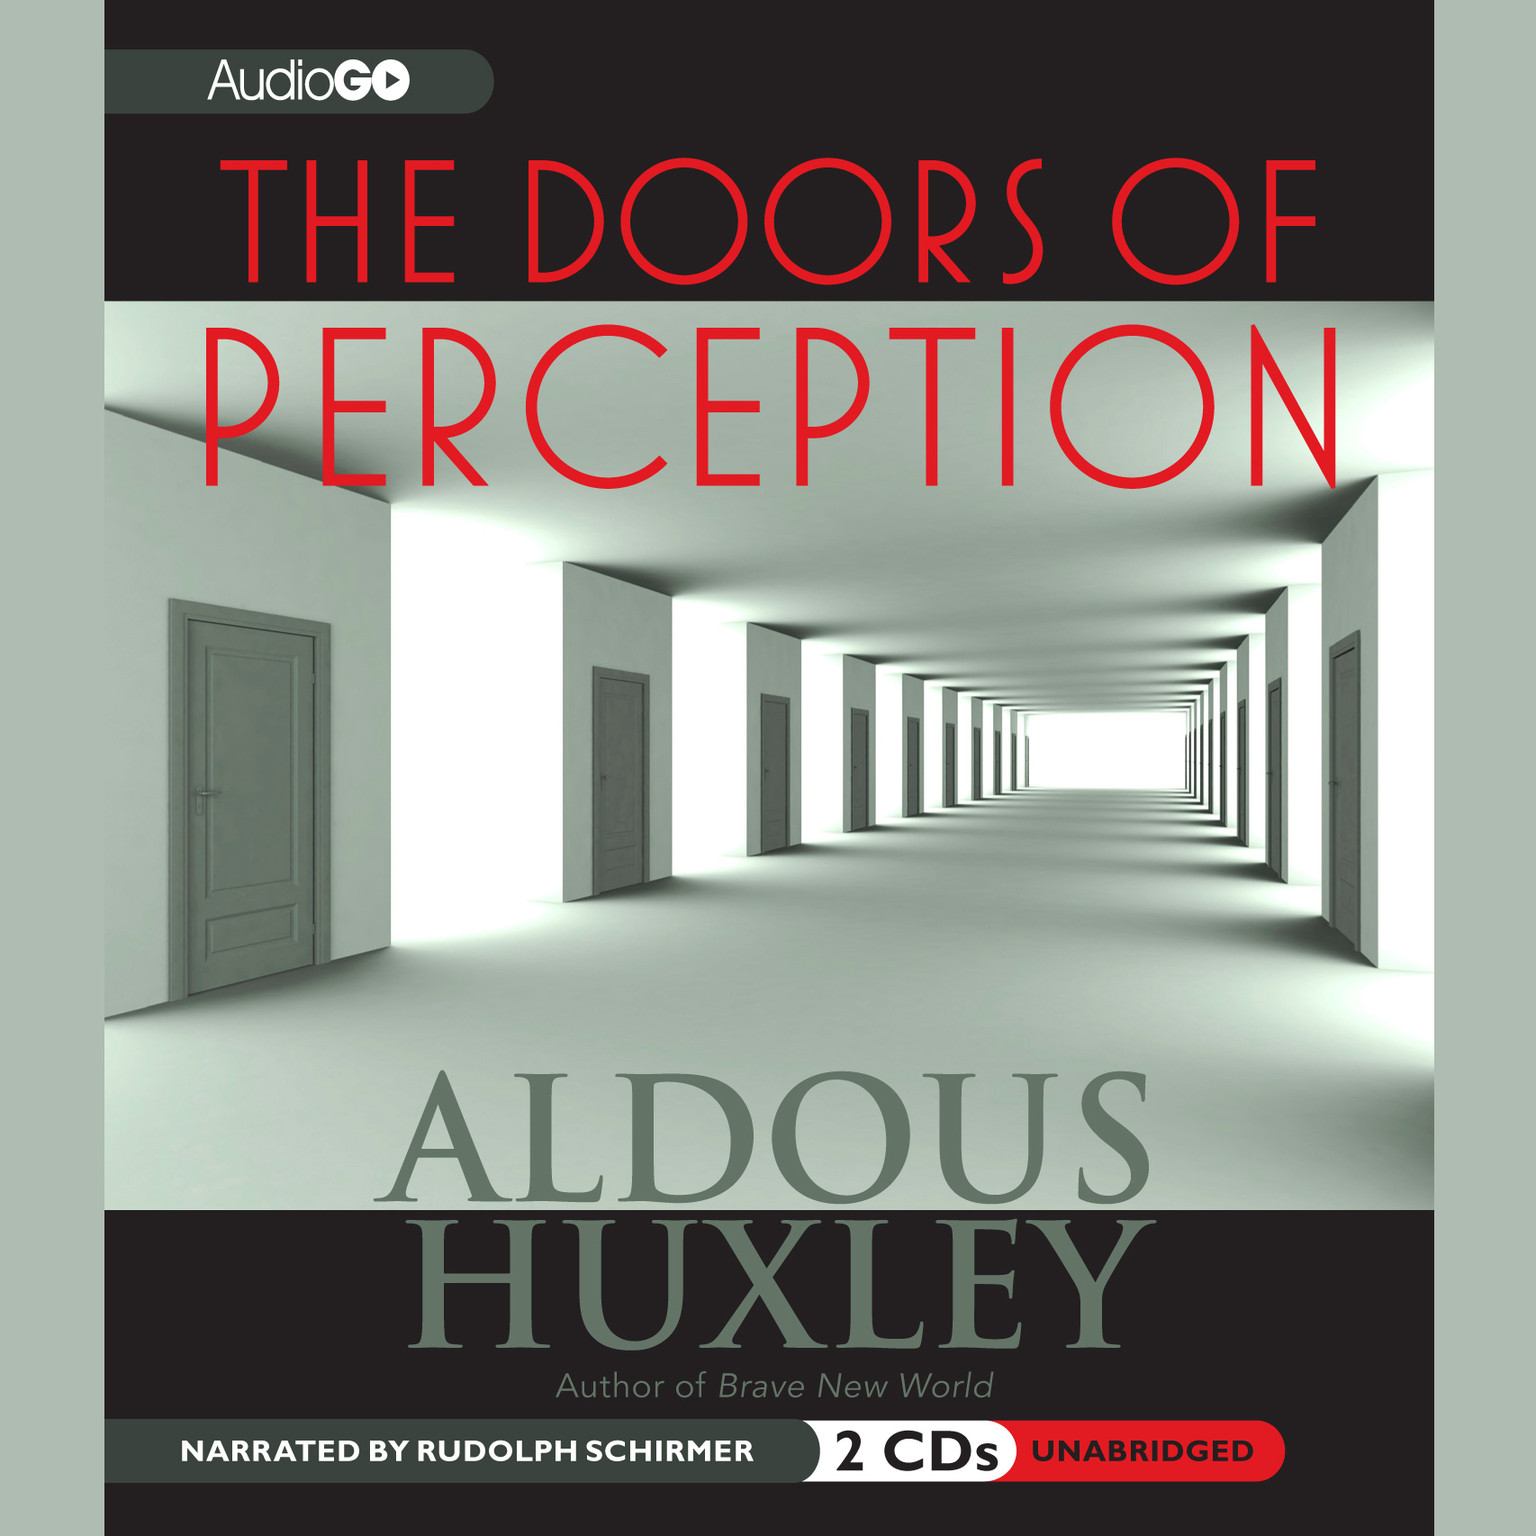 Extended Audio S&le The Doors of Perception Audiobook by Aldous Huxley  sc 1 st  AudiobookSTORE.com & The Doors of Perception - Audiobook | Listen Instantly!